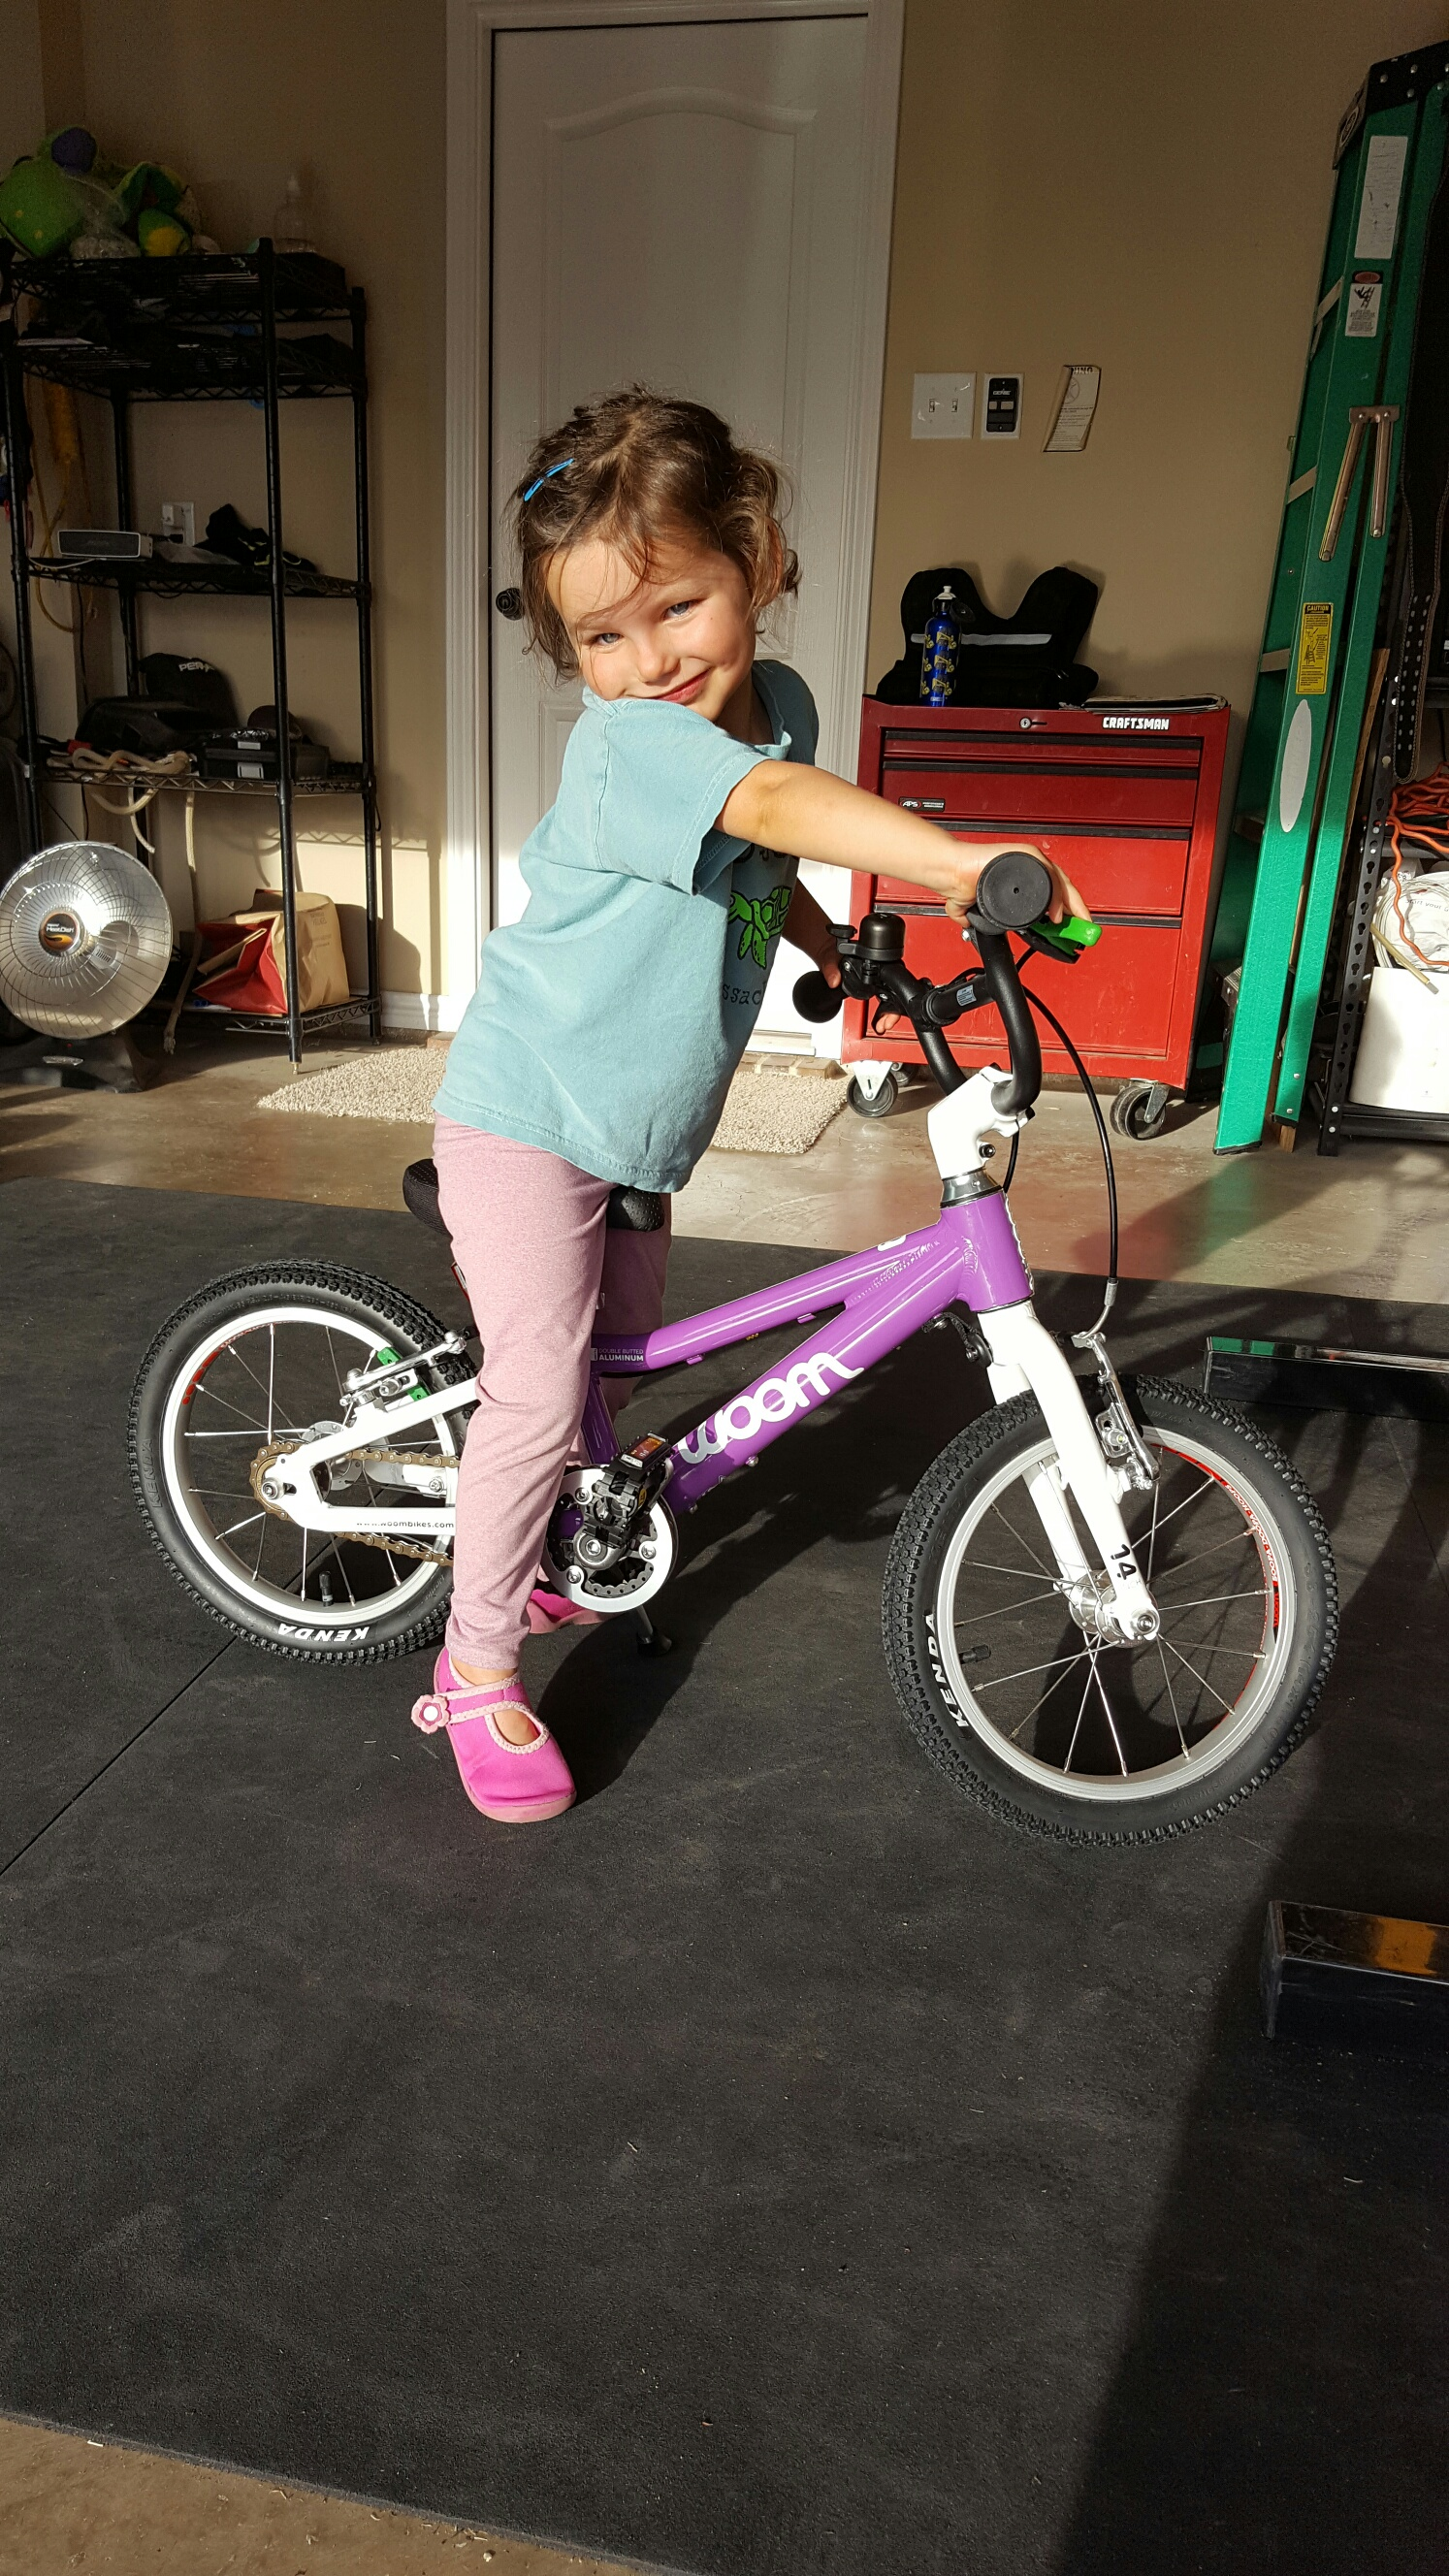 woom bikes, balance bike, pedal bike, no training wheels, training wheels, riding bike, kids